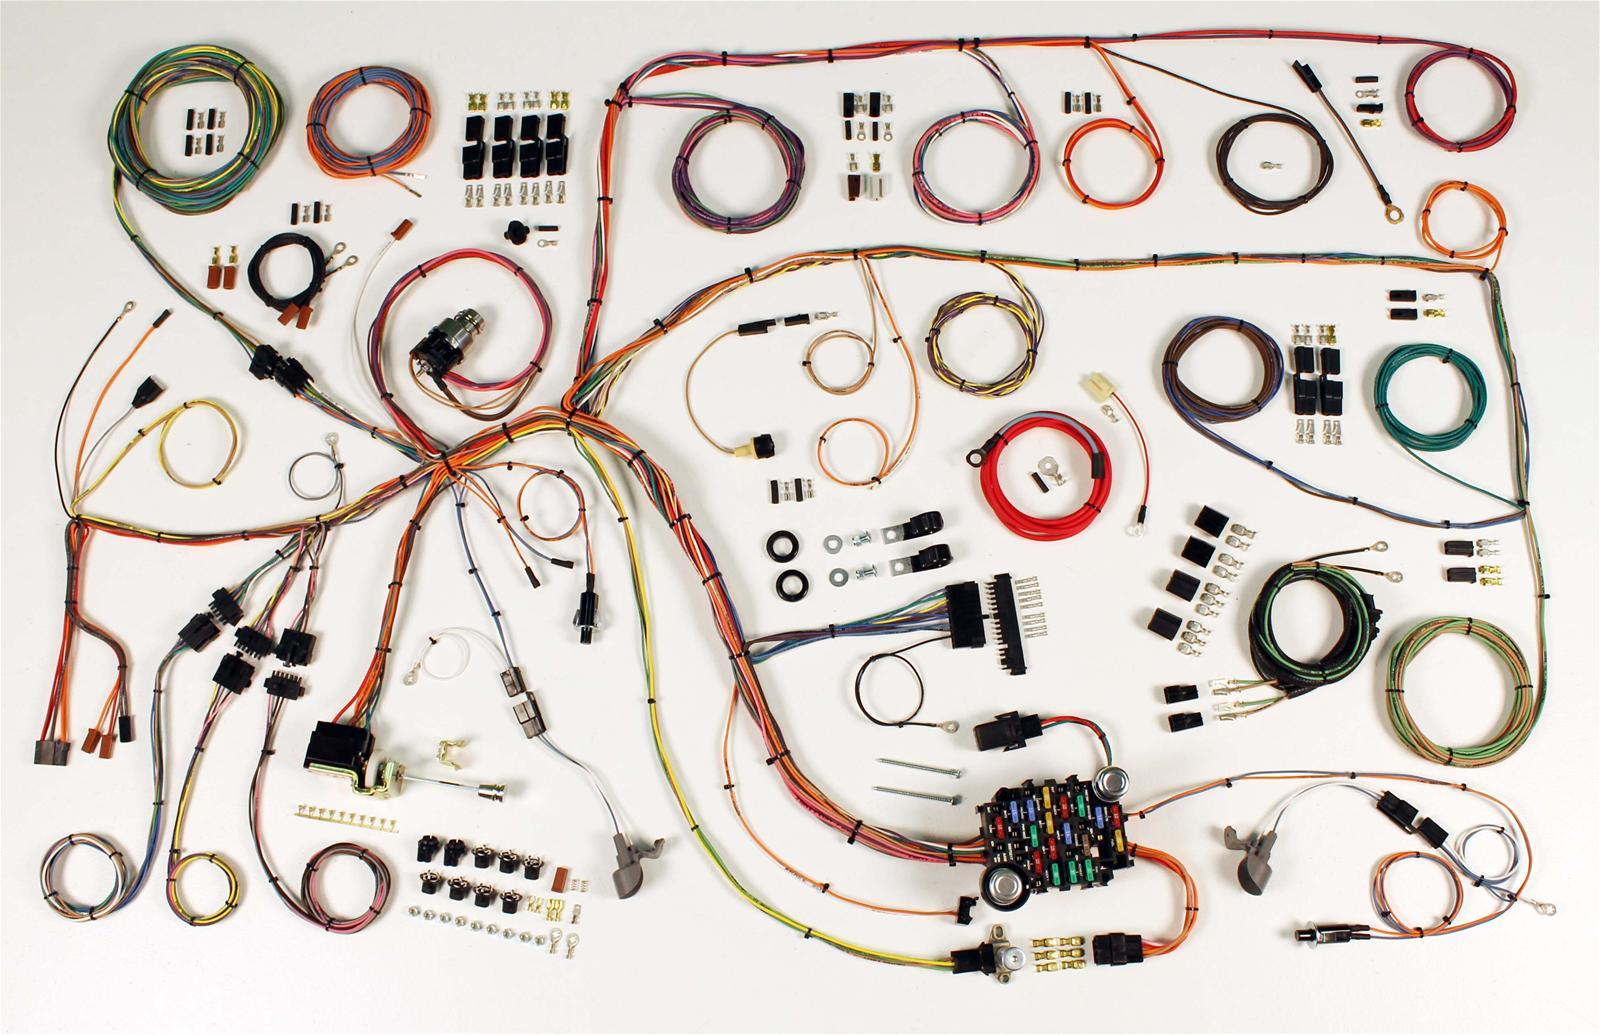 american autowire classic update series wiring harness kit. Black Bedroom Furniture Sets. Home Design Ideas